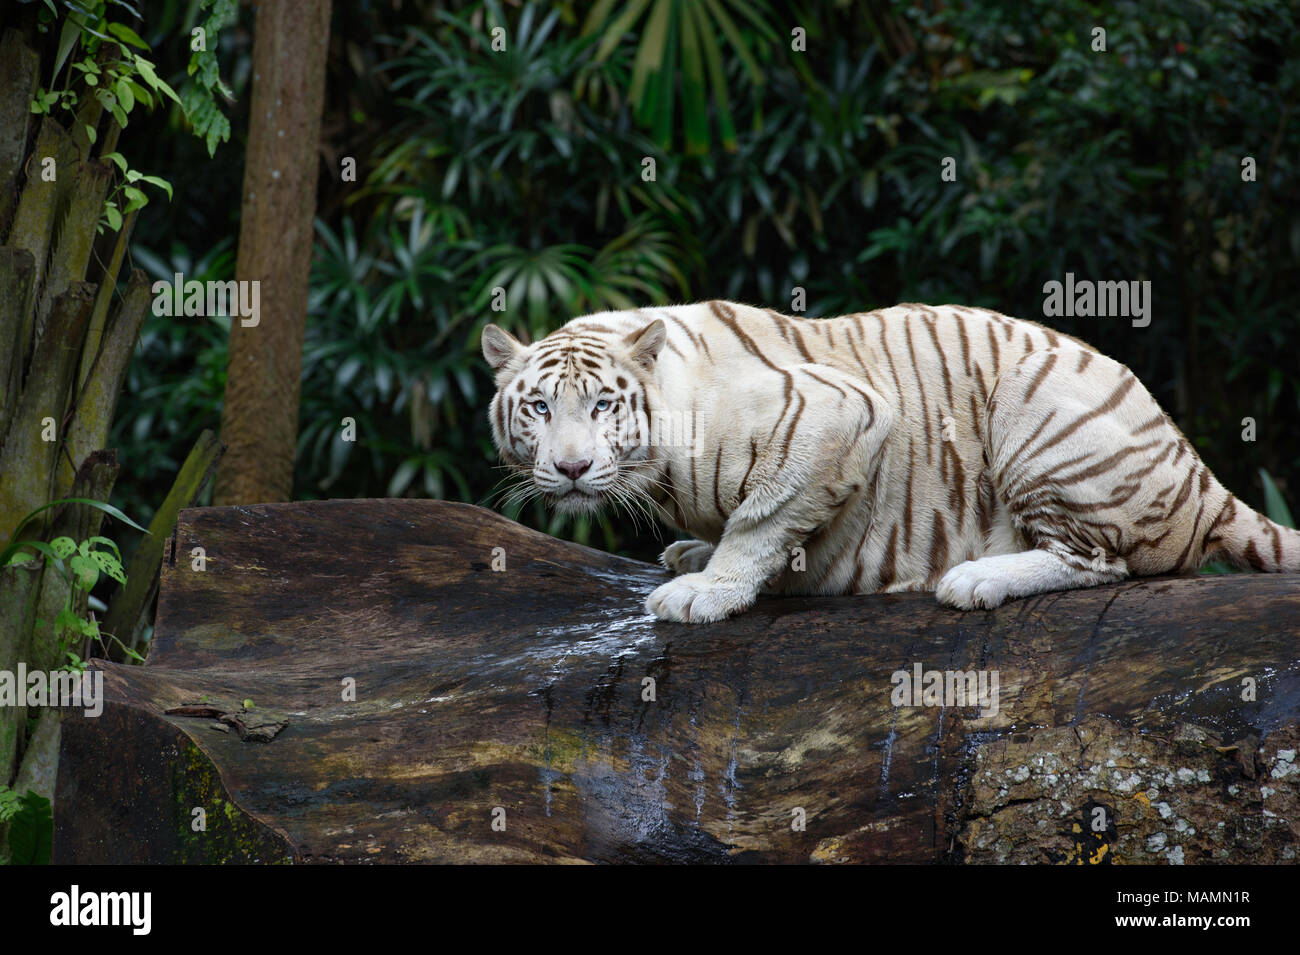 Tiger in a jungle. White Bengal tiger on tree trunk with forest on background - Stock Image